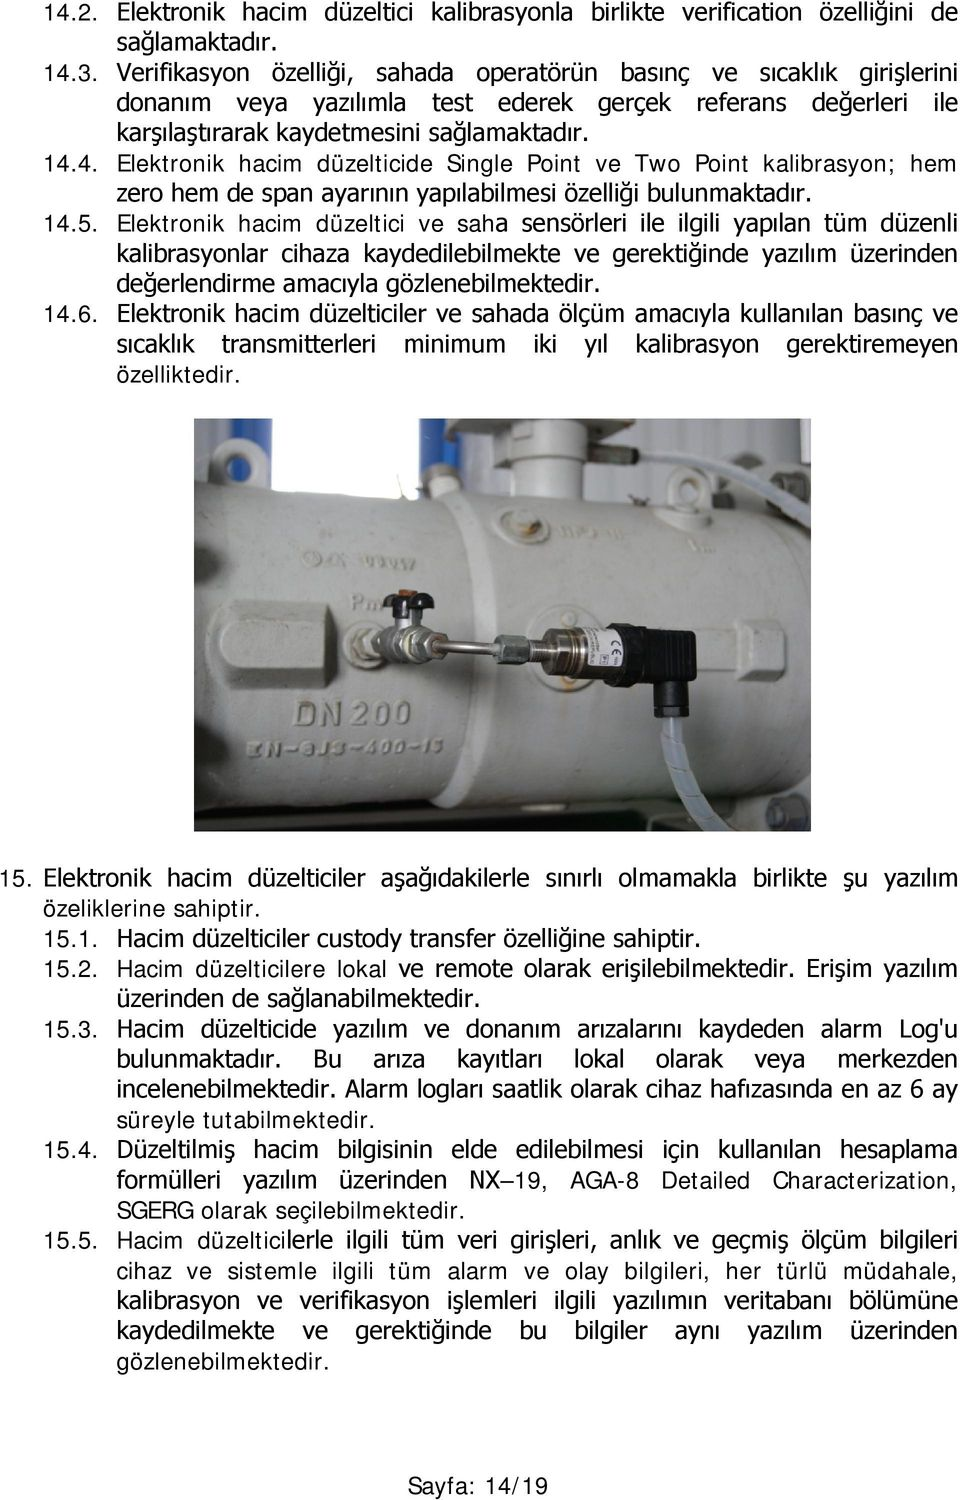 4. Elektronik hacim düzelticide Single Point ve Two Point kalibrasyon; hem zero hem de span ayarının yapılabilmesi özelliği bulunmaktadır. 14.5.